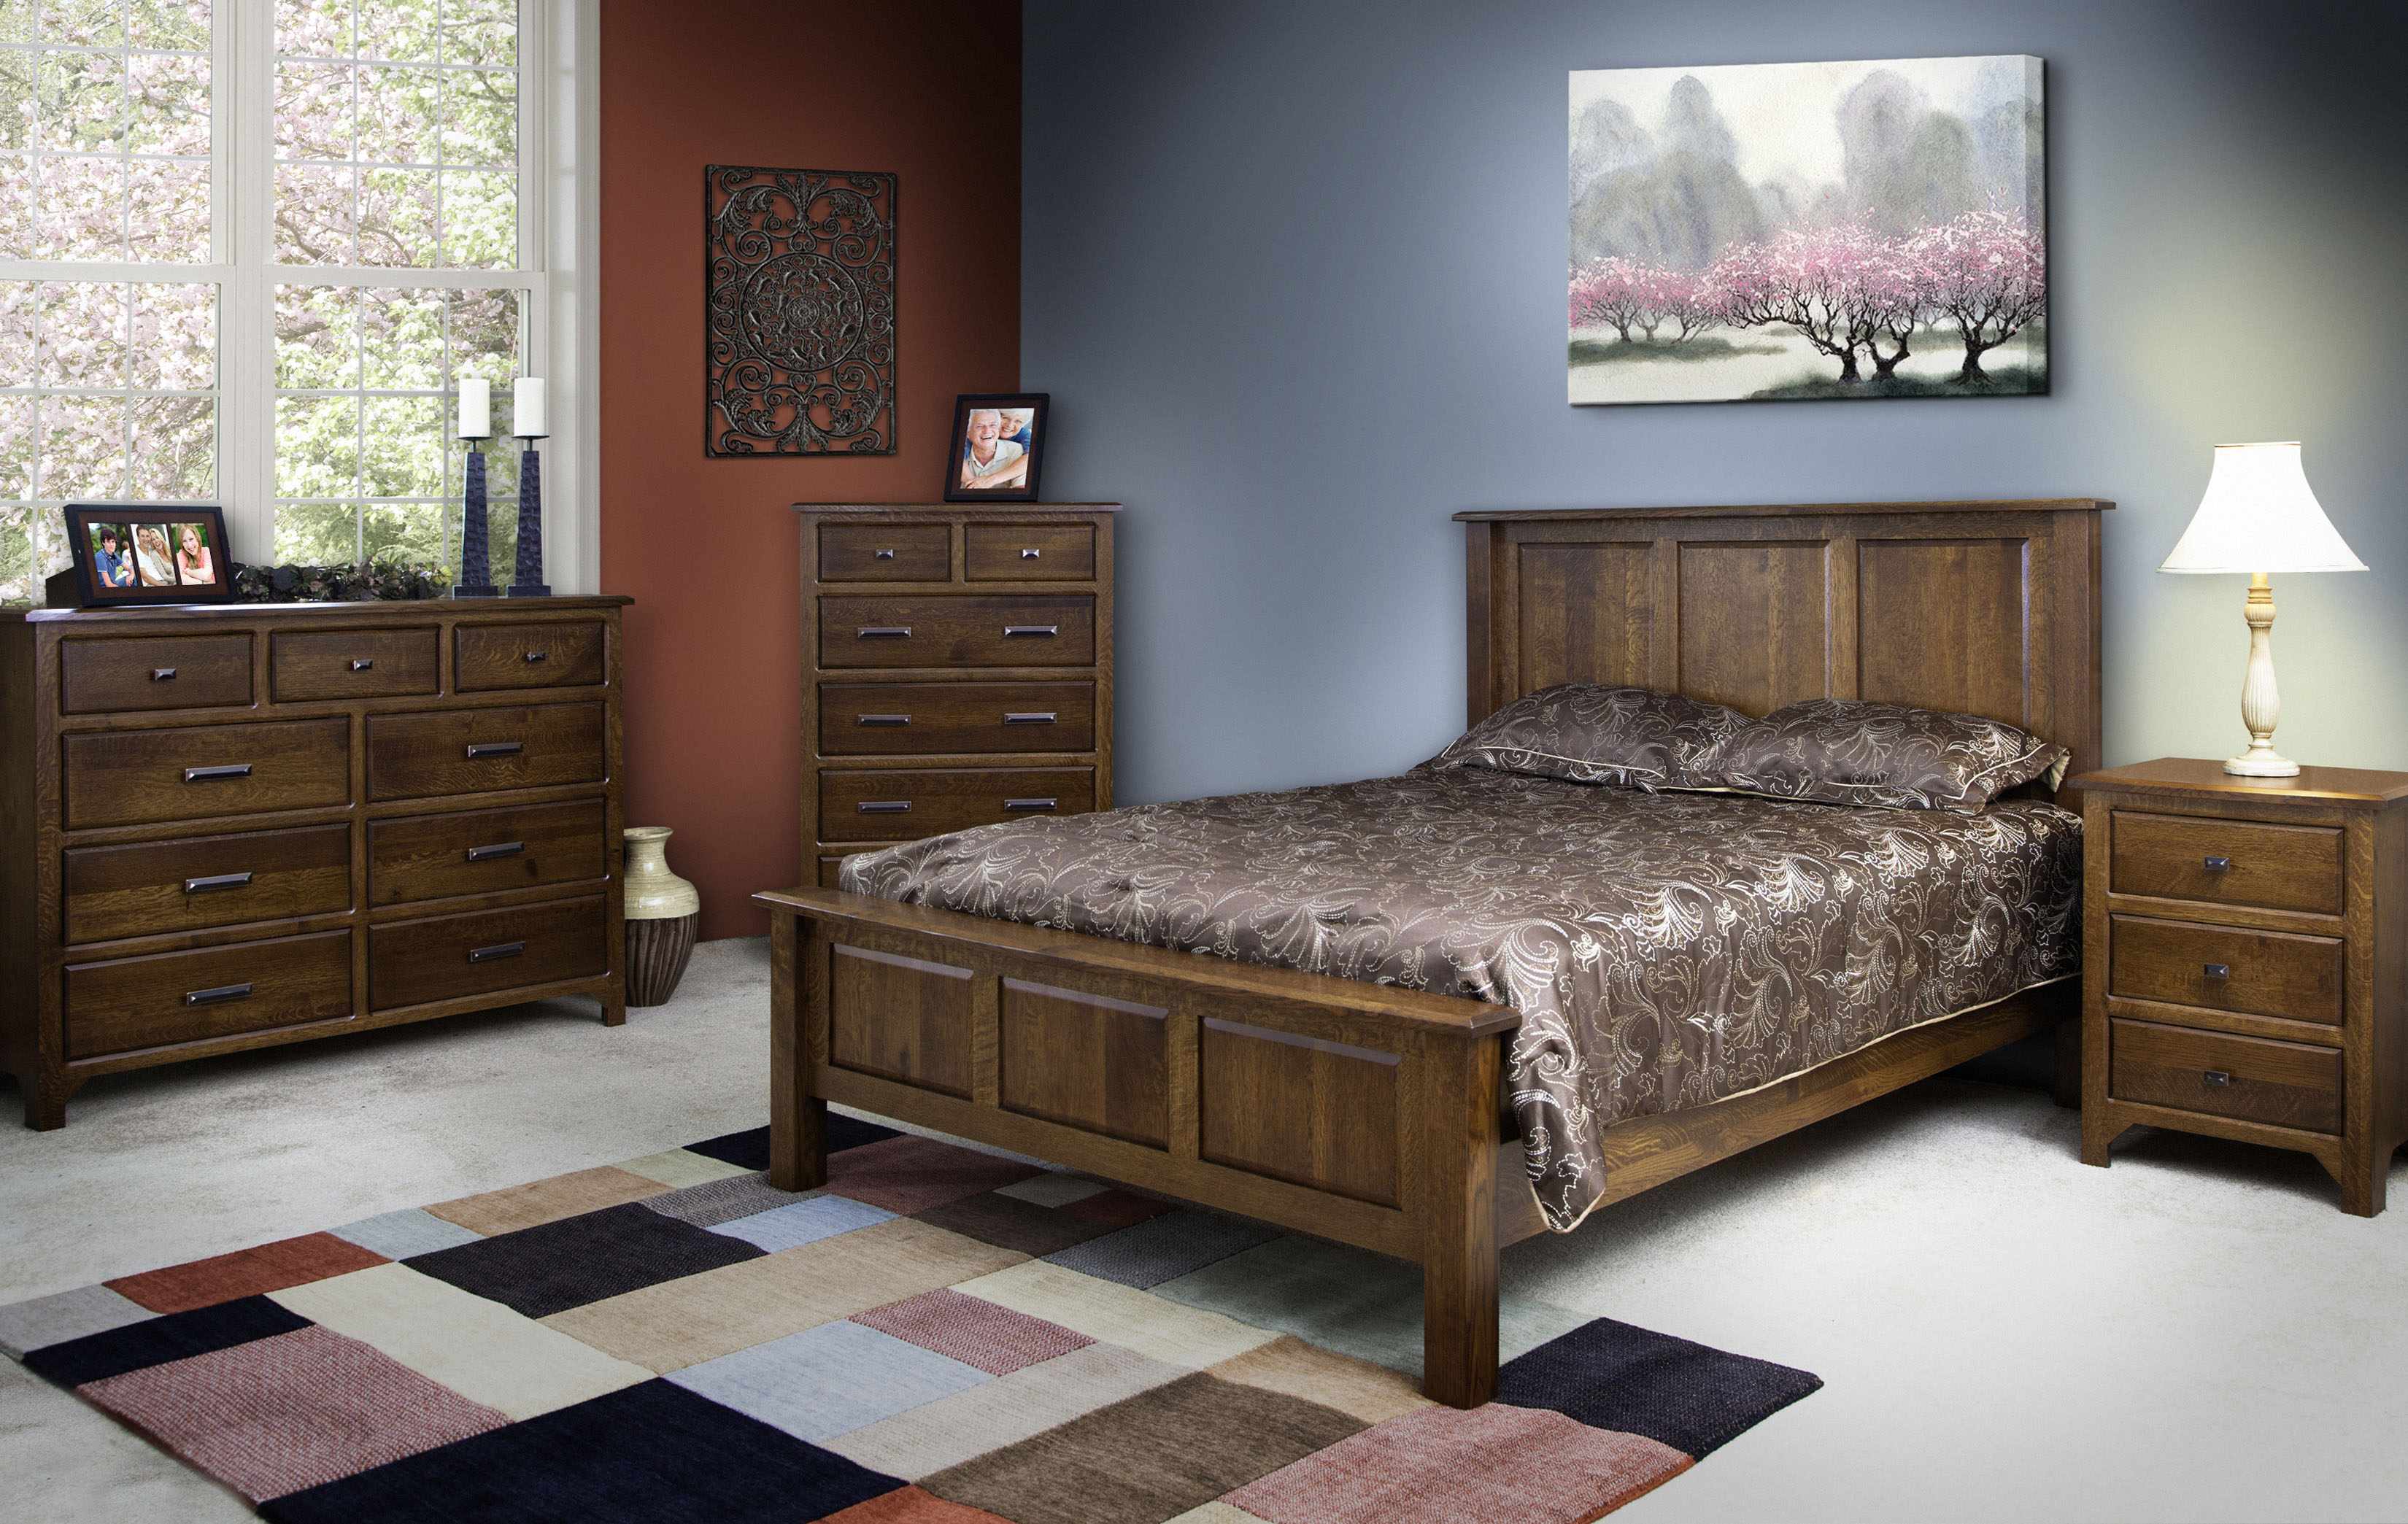 bedrooms iron artisan style furnishings inviting world old crafted set bedroom